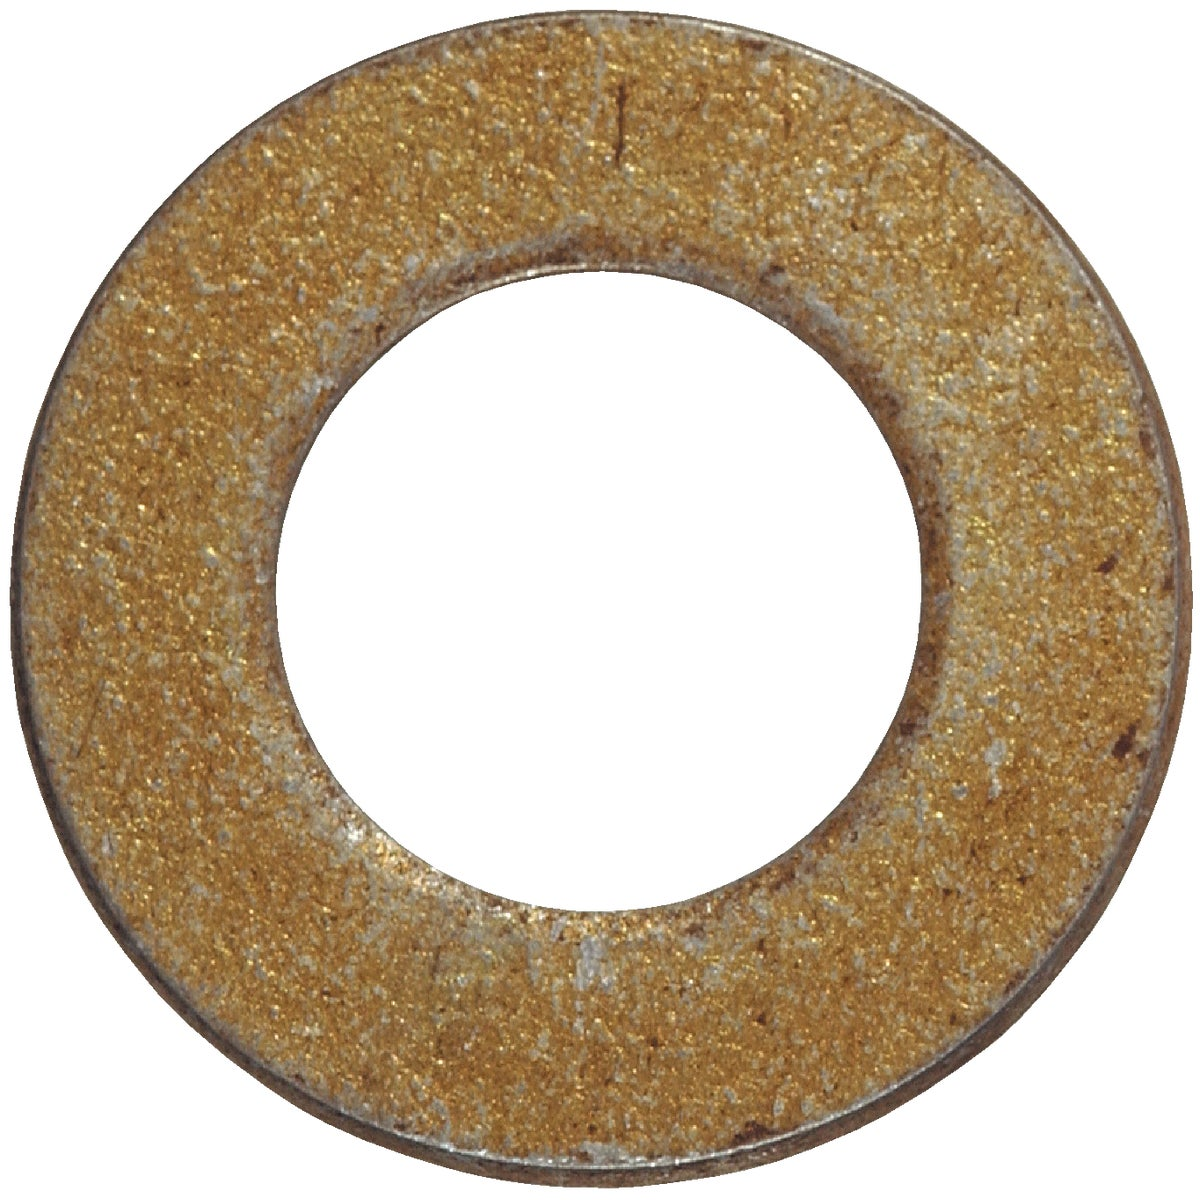 "7/16"" SAE FLAT WASHER - 280325 by Hillman Fastener"